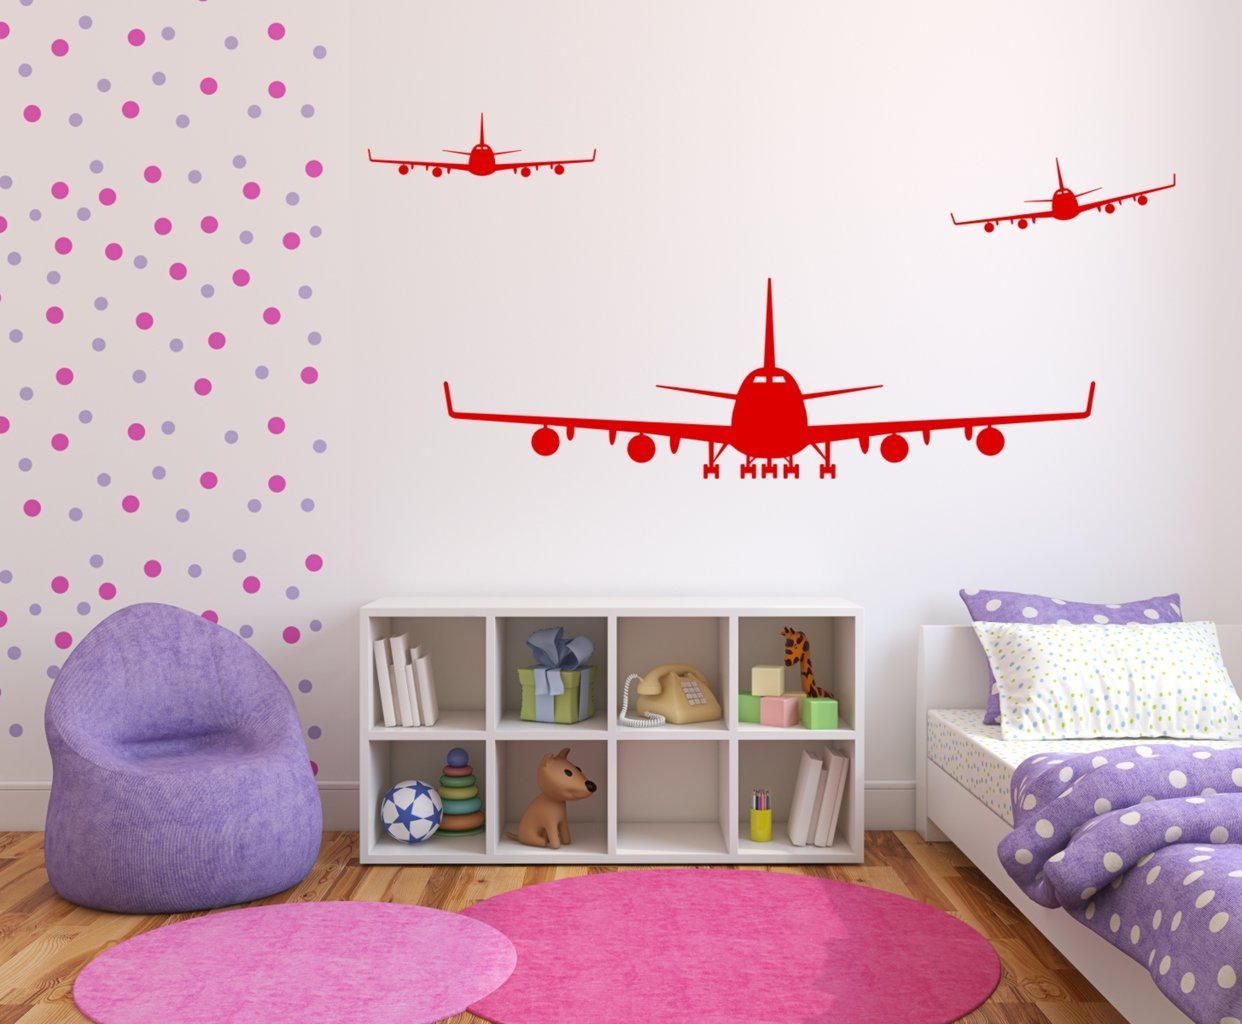 wandtattoo flieger flugzeug set 558 kinderzimmer wandtattoos. Black Bedroom Furniture Sets. Home Design Ideas